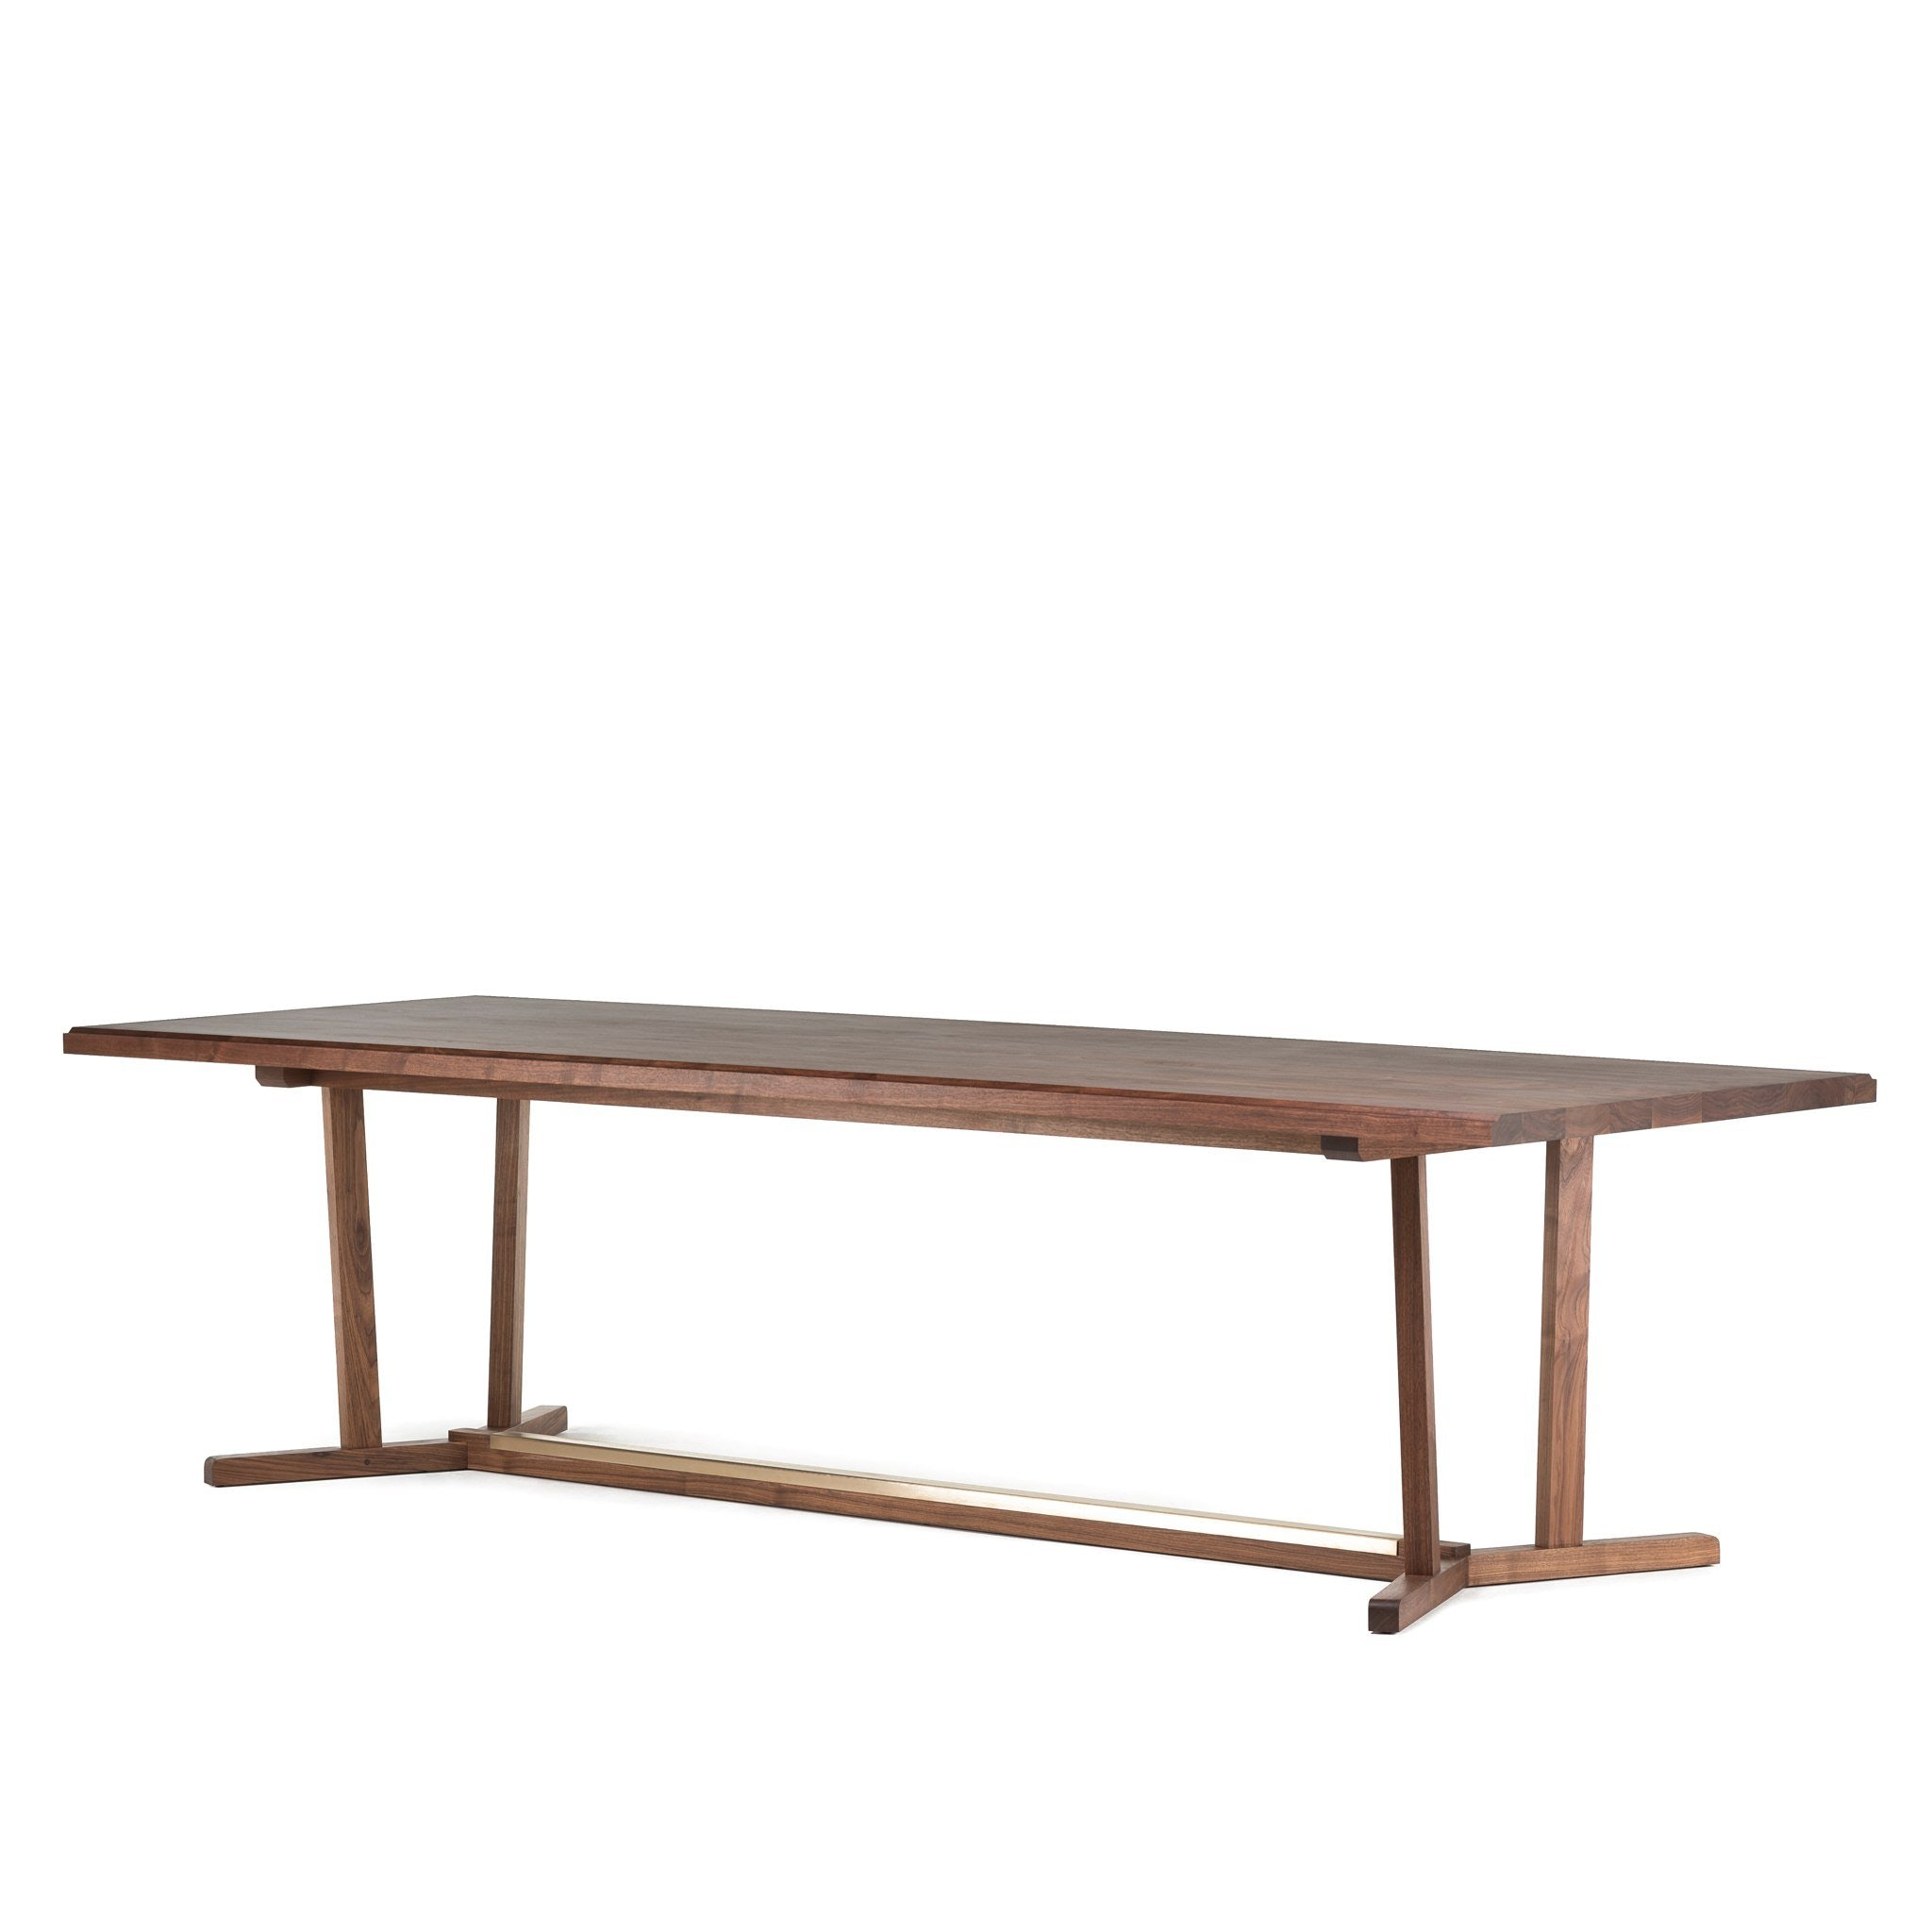 Shaker Dining Table Timber Top by Neri & Hu